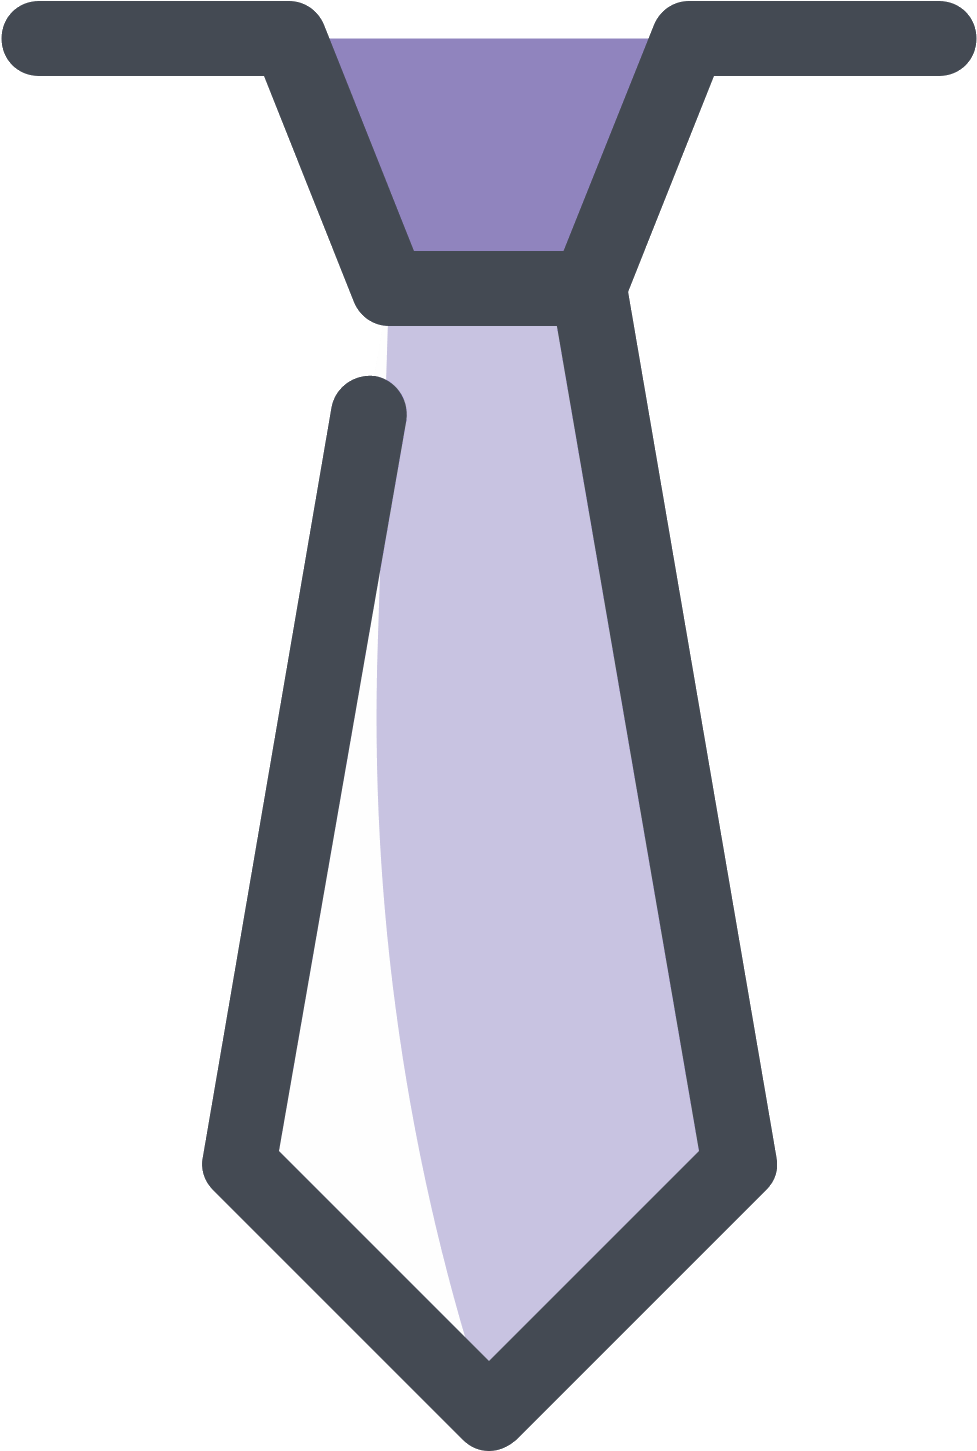 A Tie Is A Fabric That Goes Around Your Neck And Then.